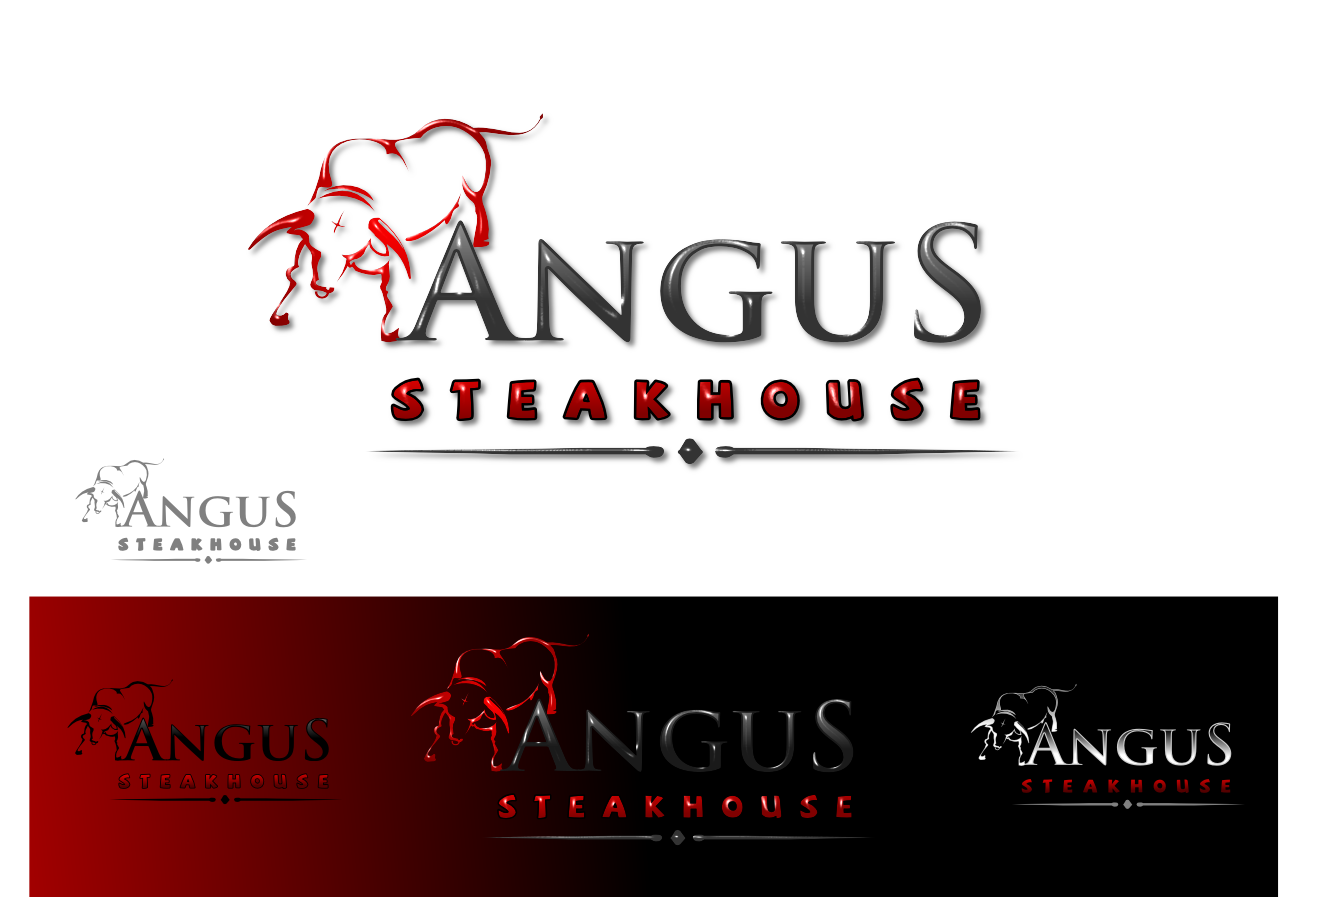 Logo Design by whoosef - Entry No. 107 in the Logo Design Contest Imaginative Custom Design for Angus Steakhouse.